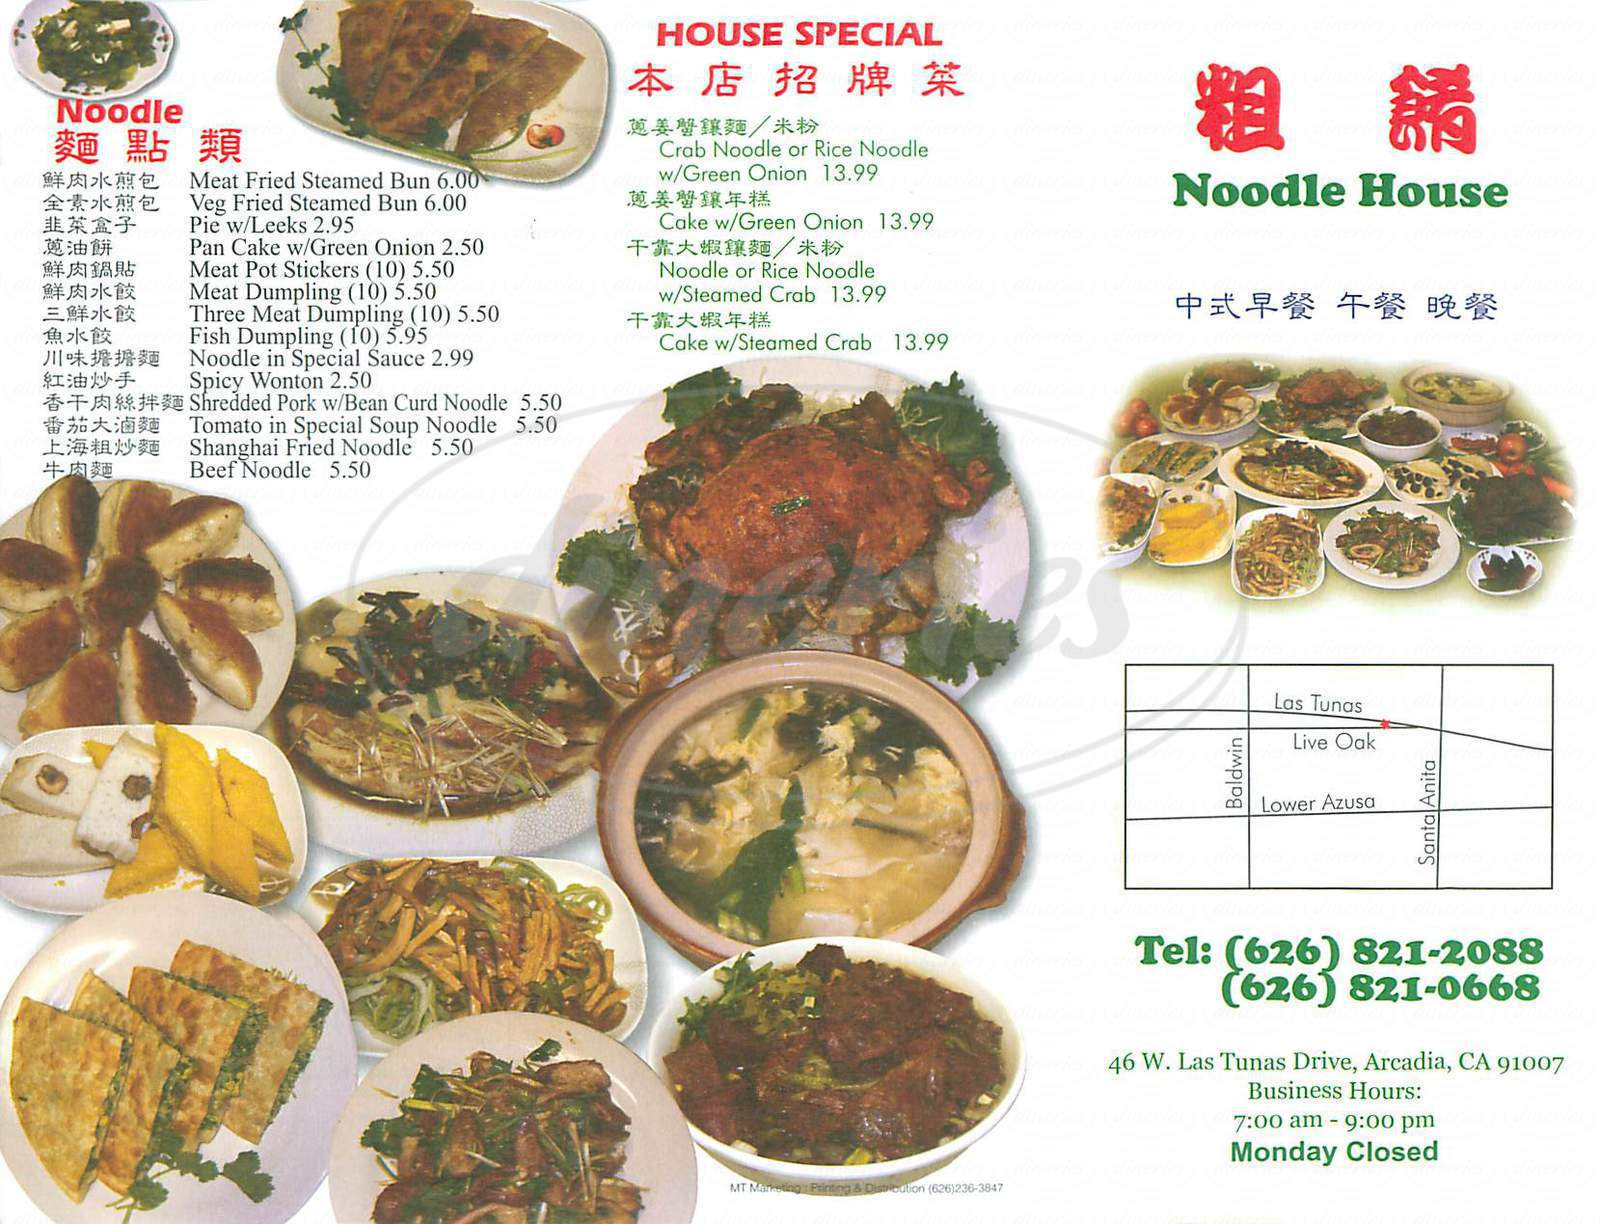 menu for Noodle House